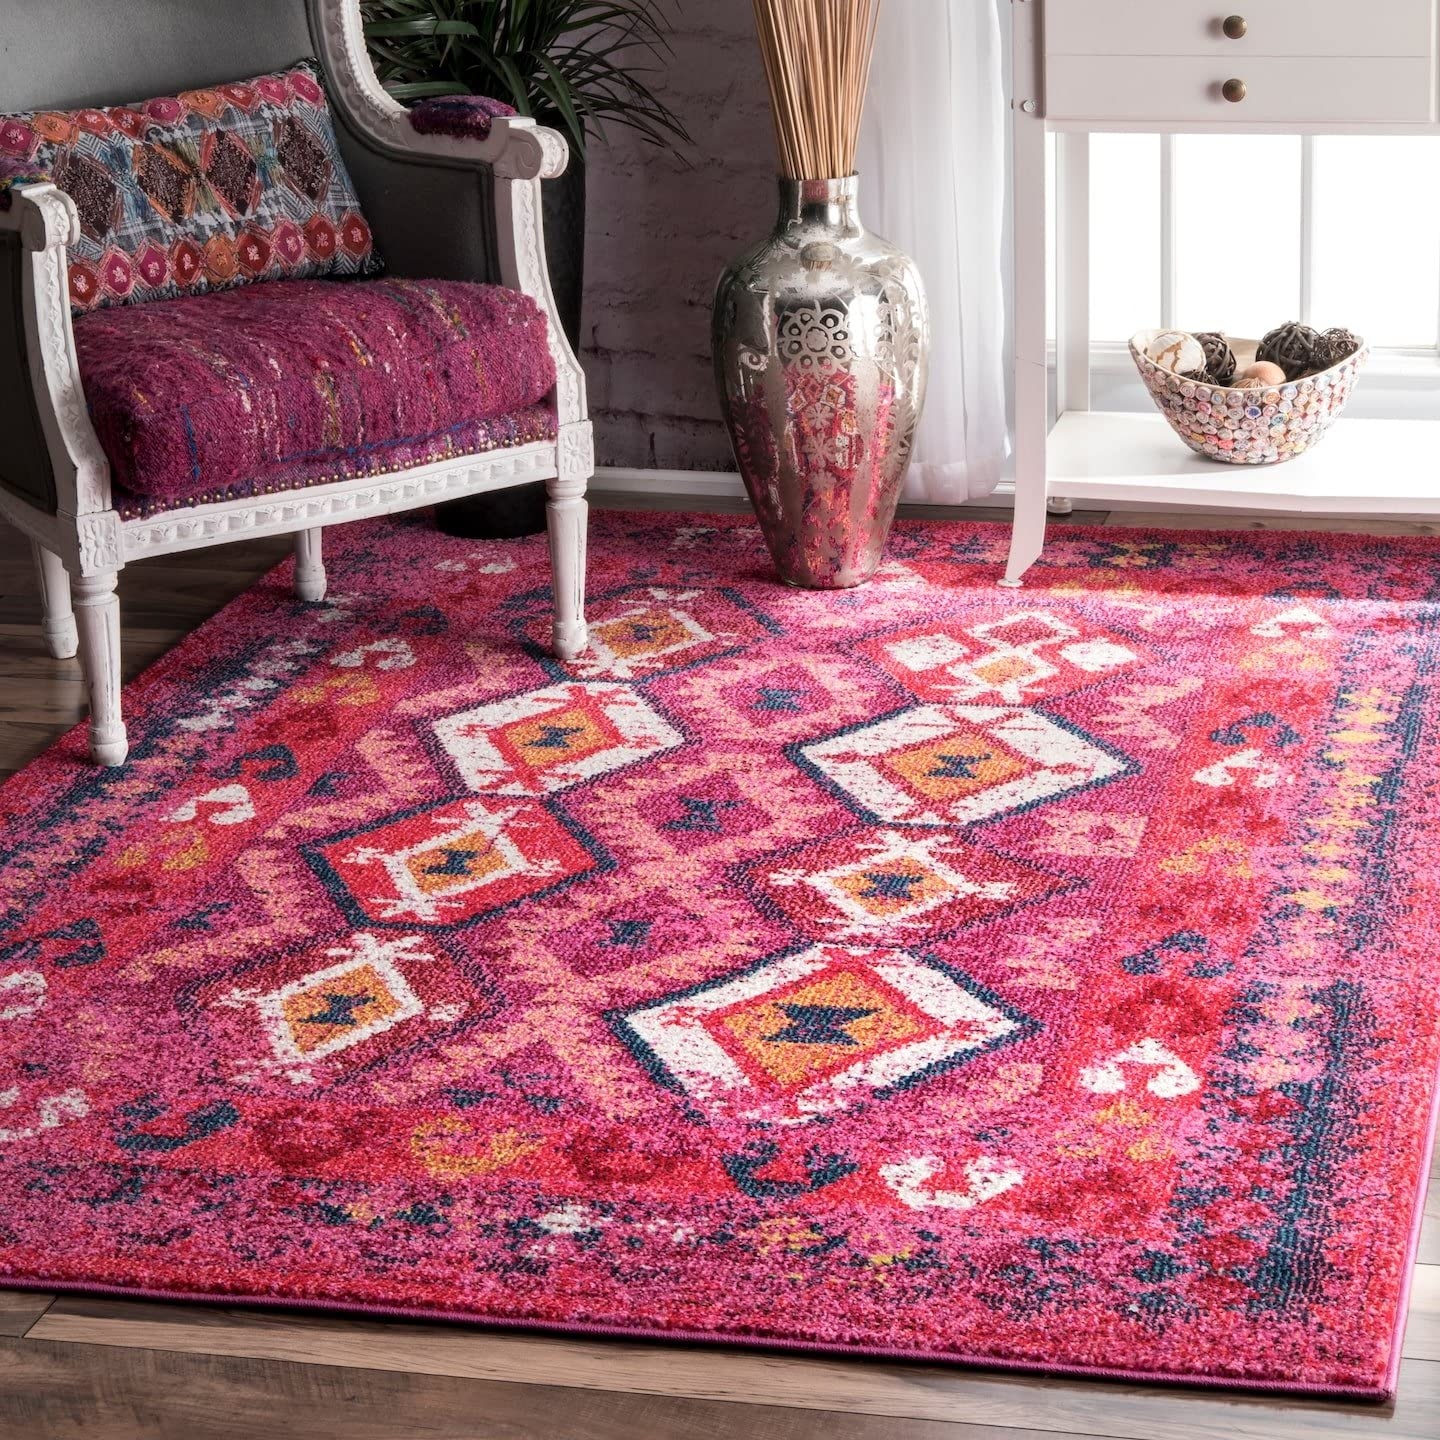 nuLOOM Mayola Tribal Spring new work one after another Area wholesale Rug Pink x 4' 6'